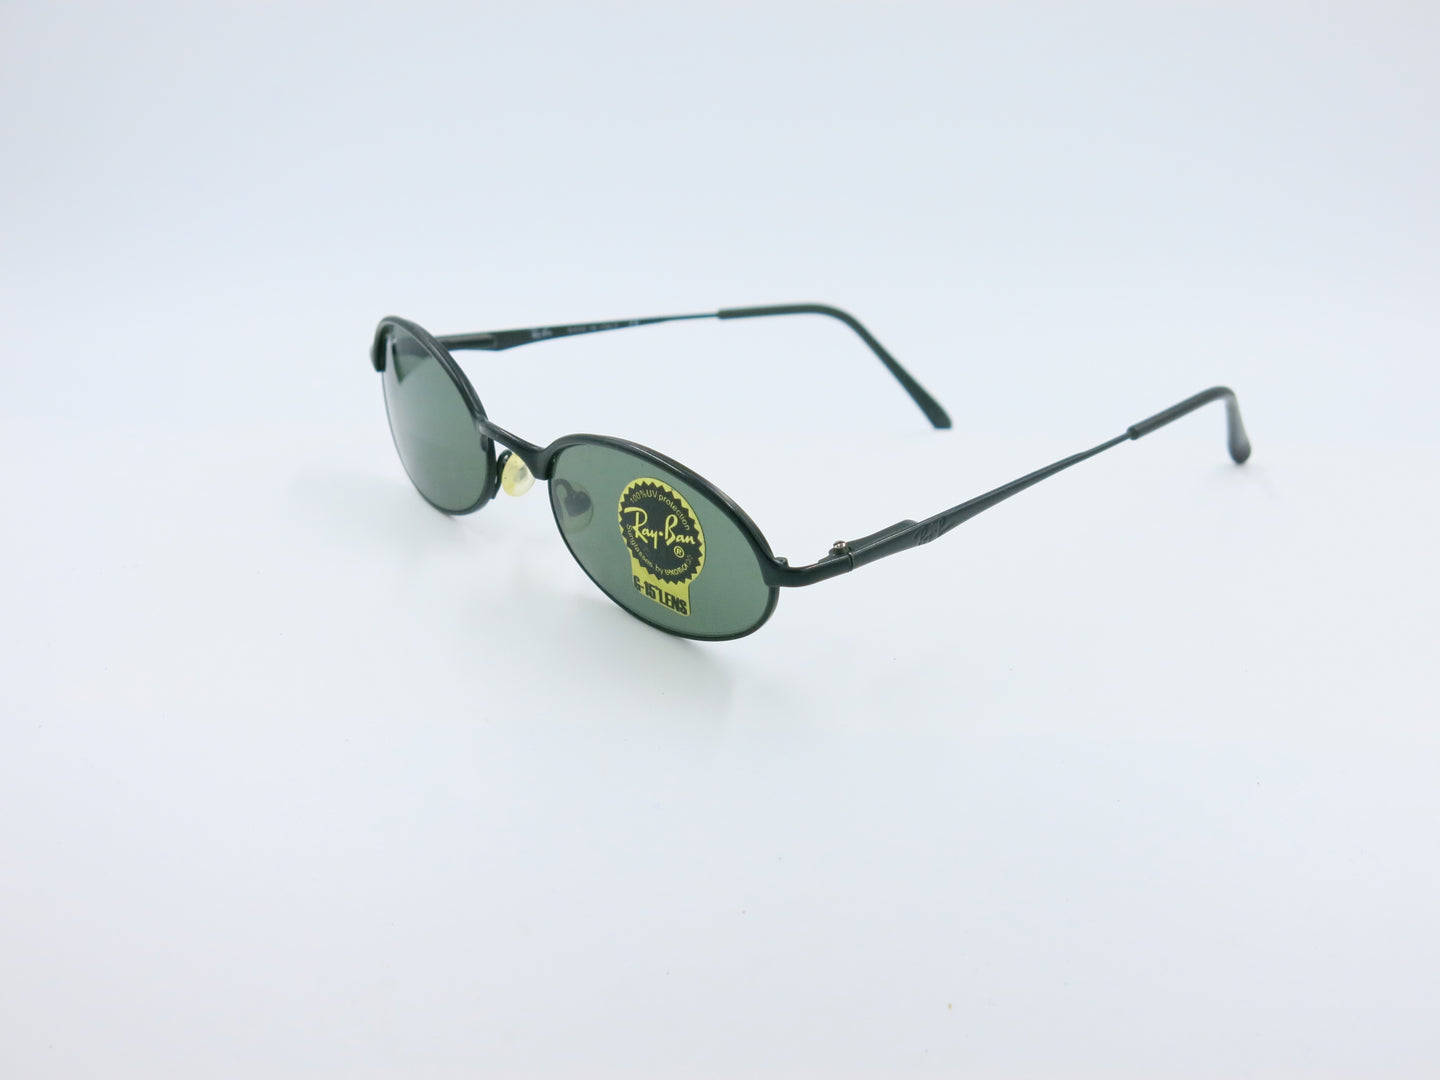 Ray-Ban Sunglasses W 2576 | Sunglasses by Ray Ban | Friedman & Sons